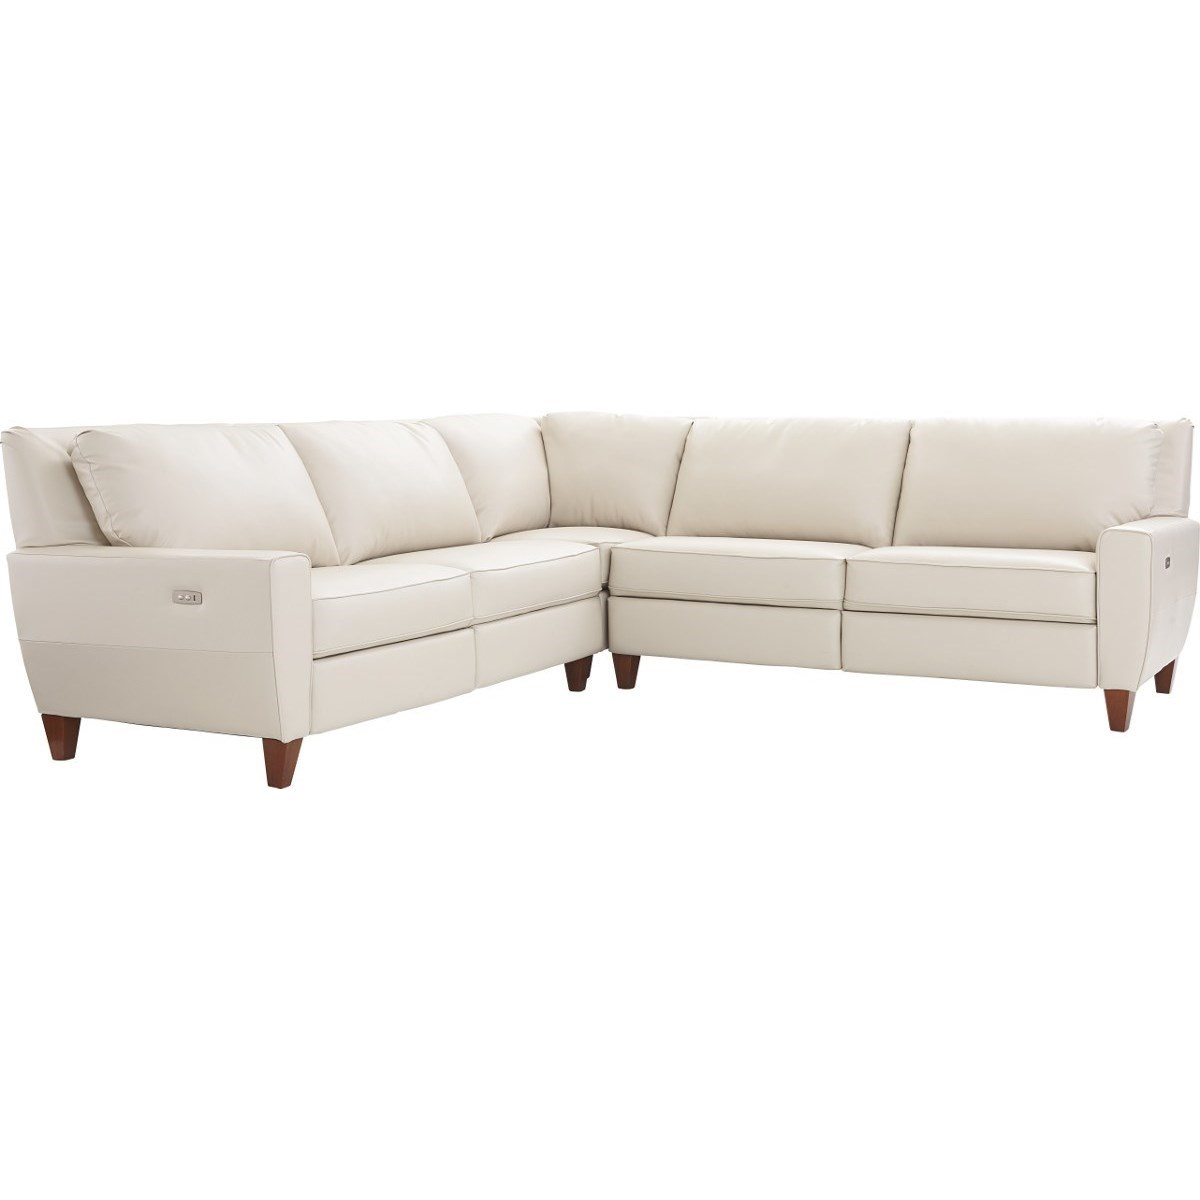 Edie 3 Pc Reclining Sectional Sofa by La-Z-Boy at Reid's Furniture